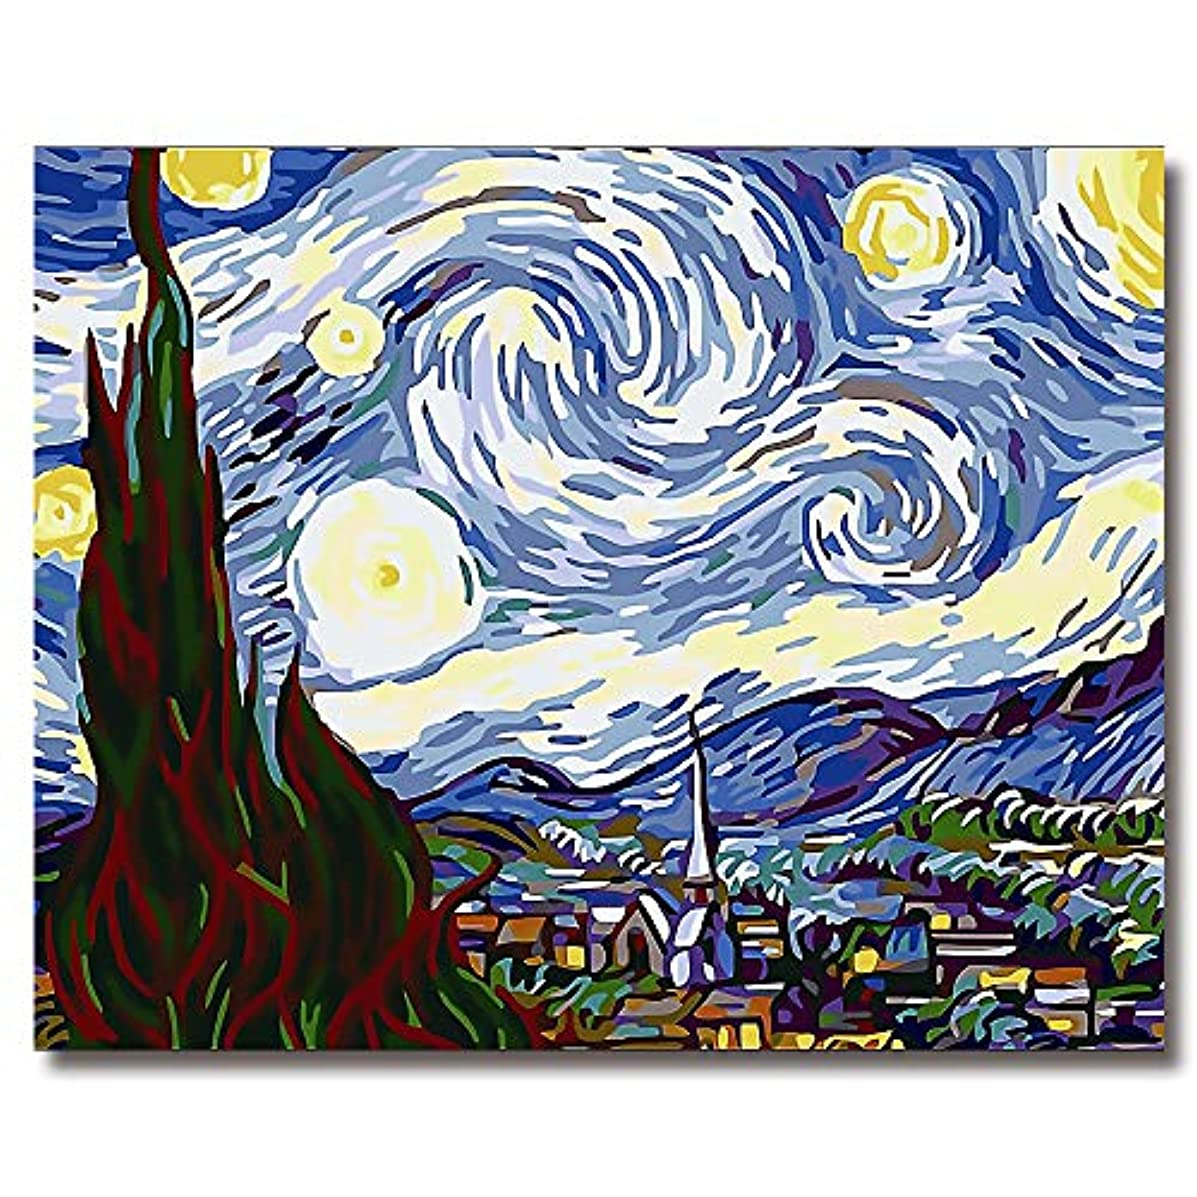 SHUAXIN Paint by Numbers for Adults-DIY Full Set of Assorted Color Oil Painting Kit and Brush Accessories-The Starry Night by Van Gogh 16